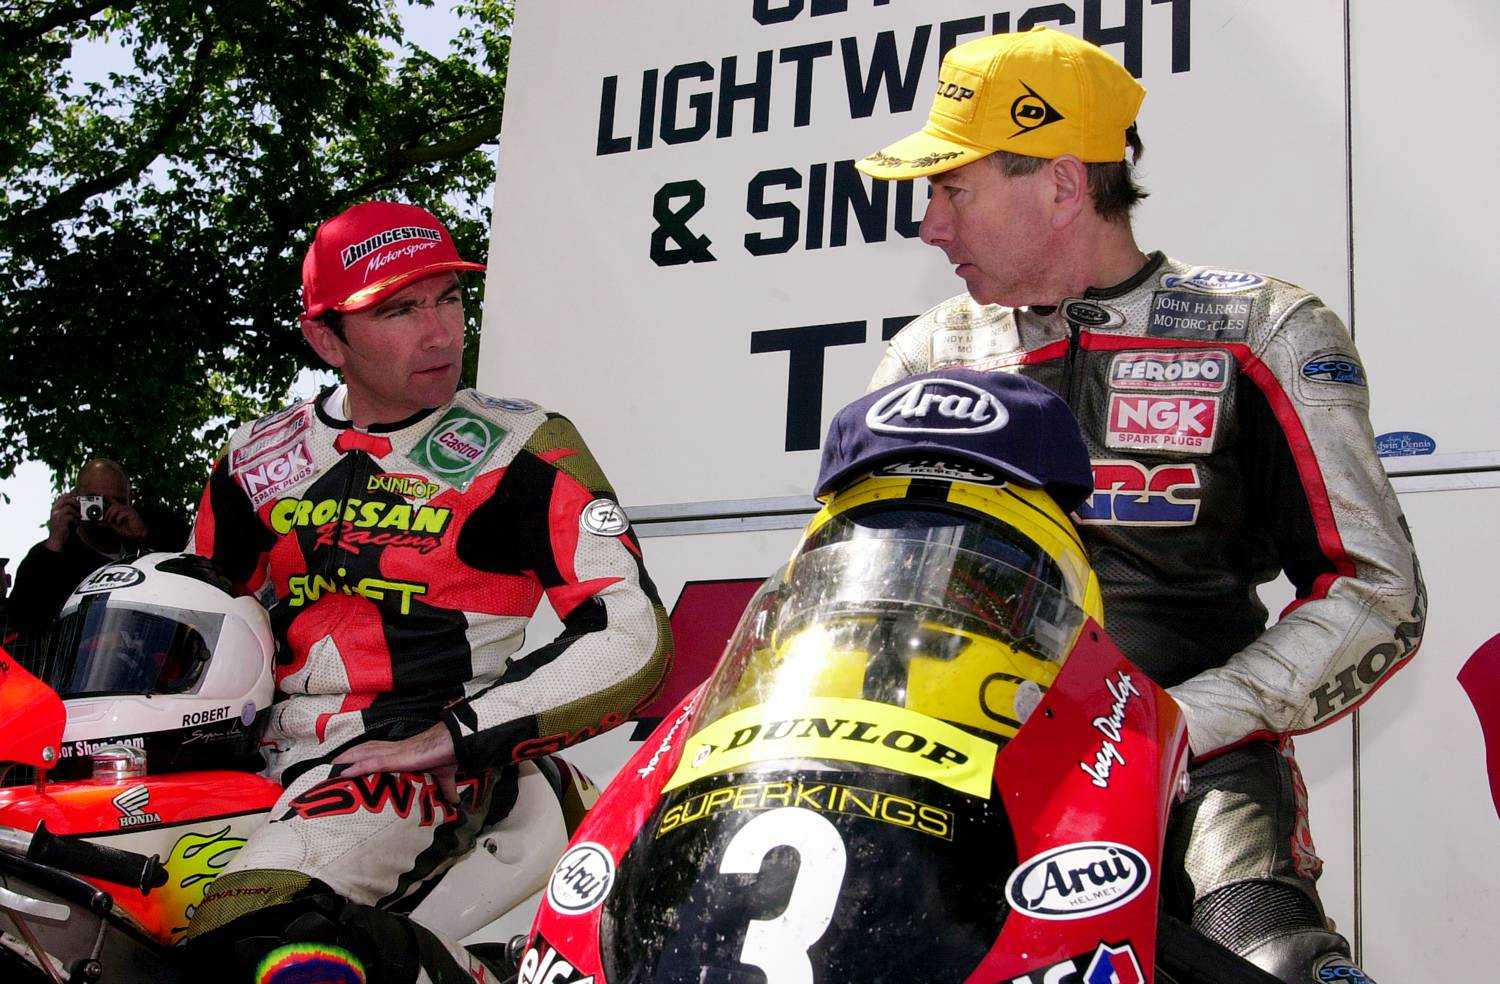 ROAD Robert & Joey Joey's final TT